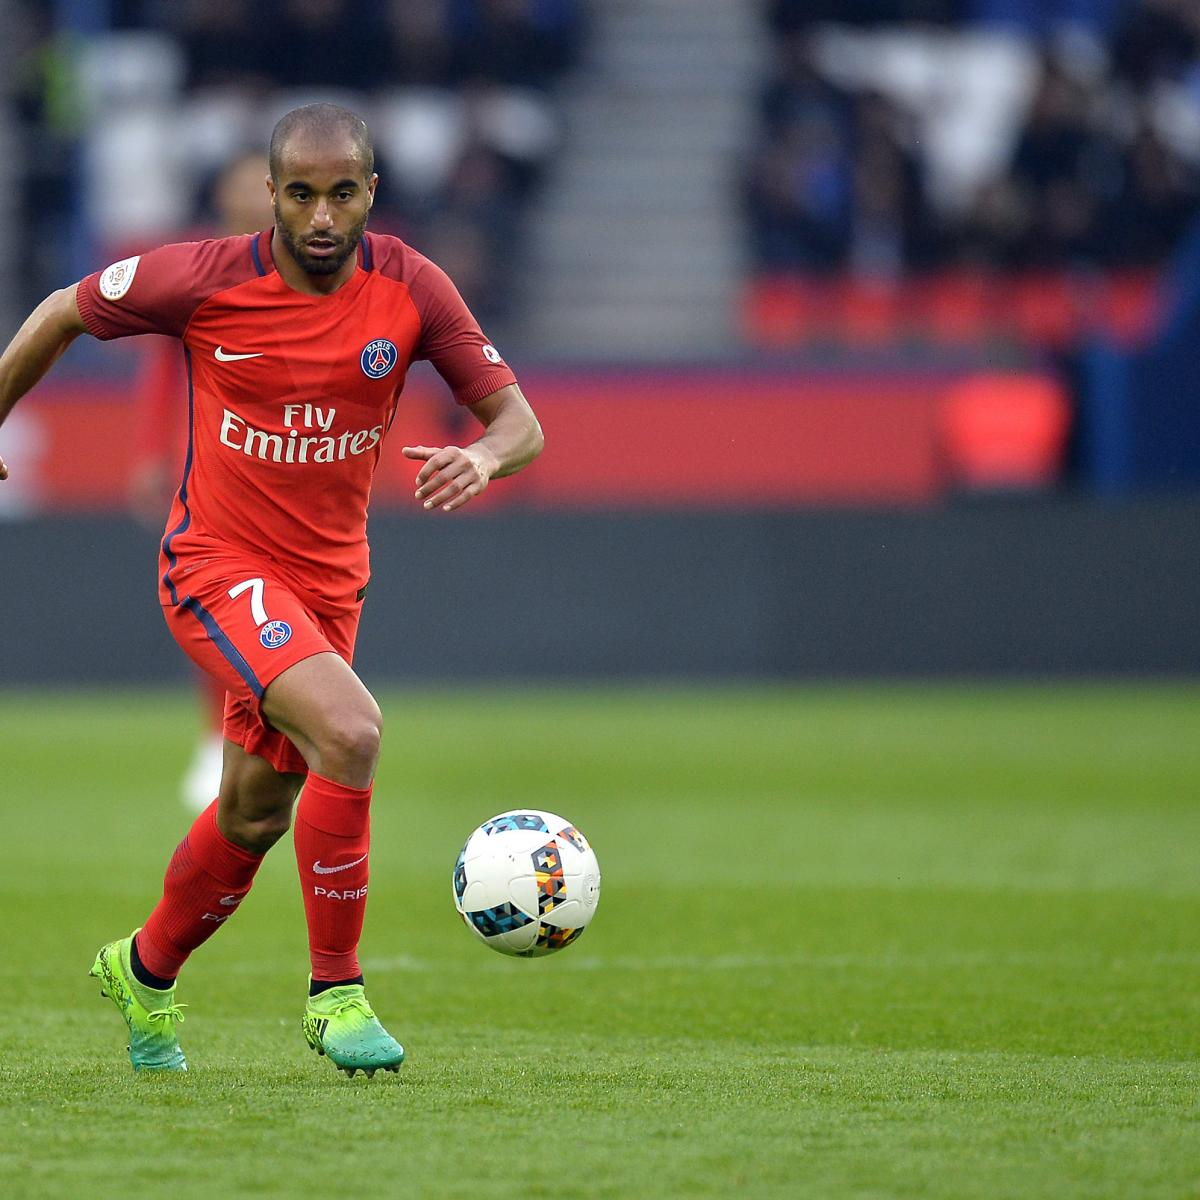 PSG Transfer News: Latest Rumours On Lucas Moura And